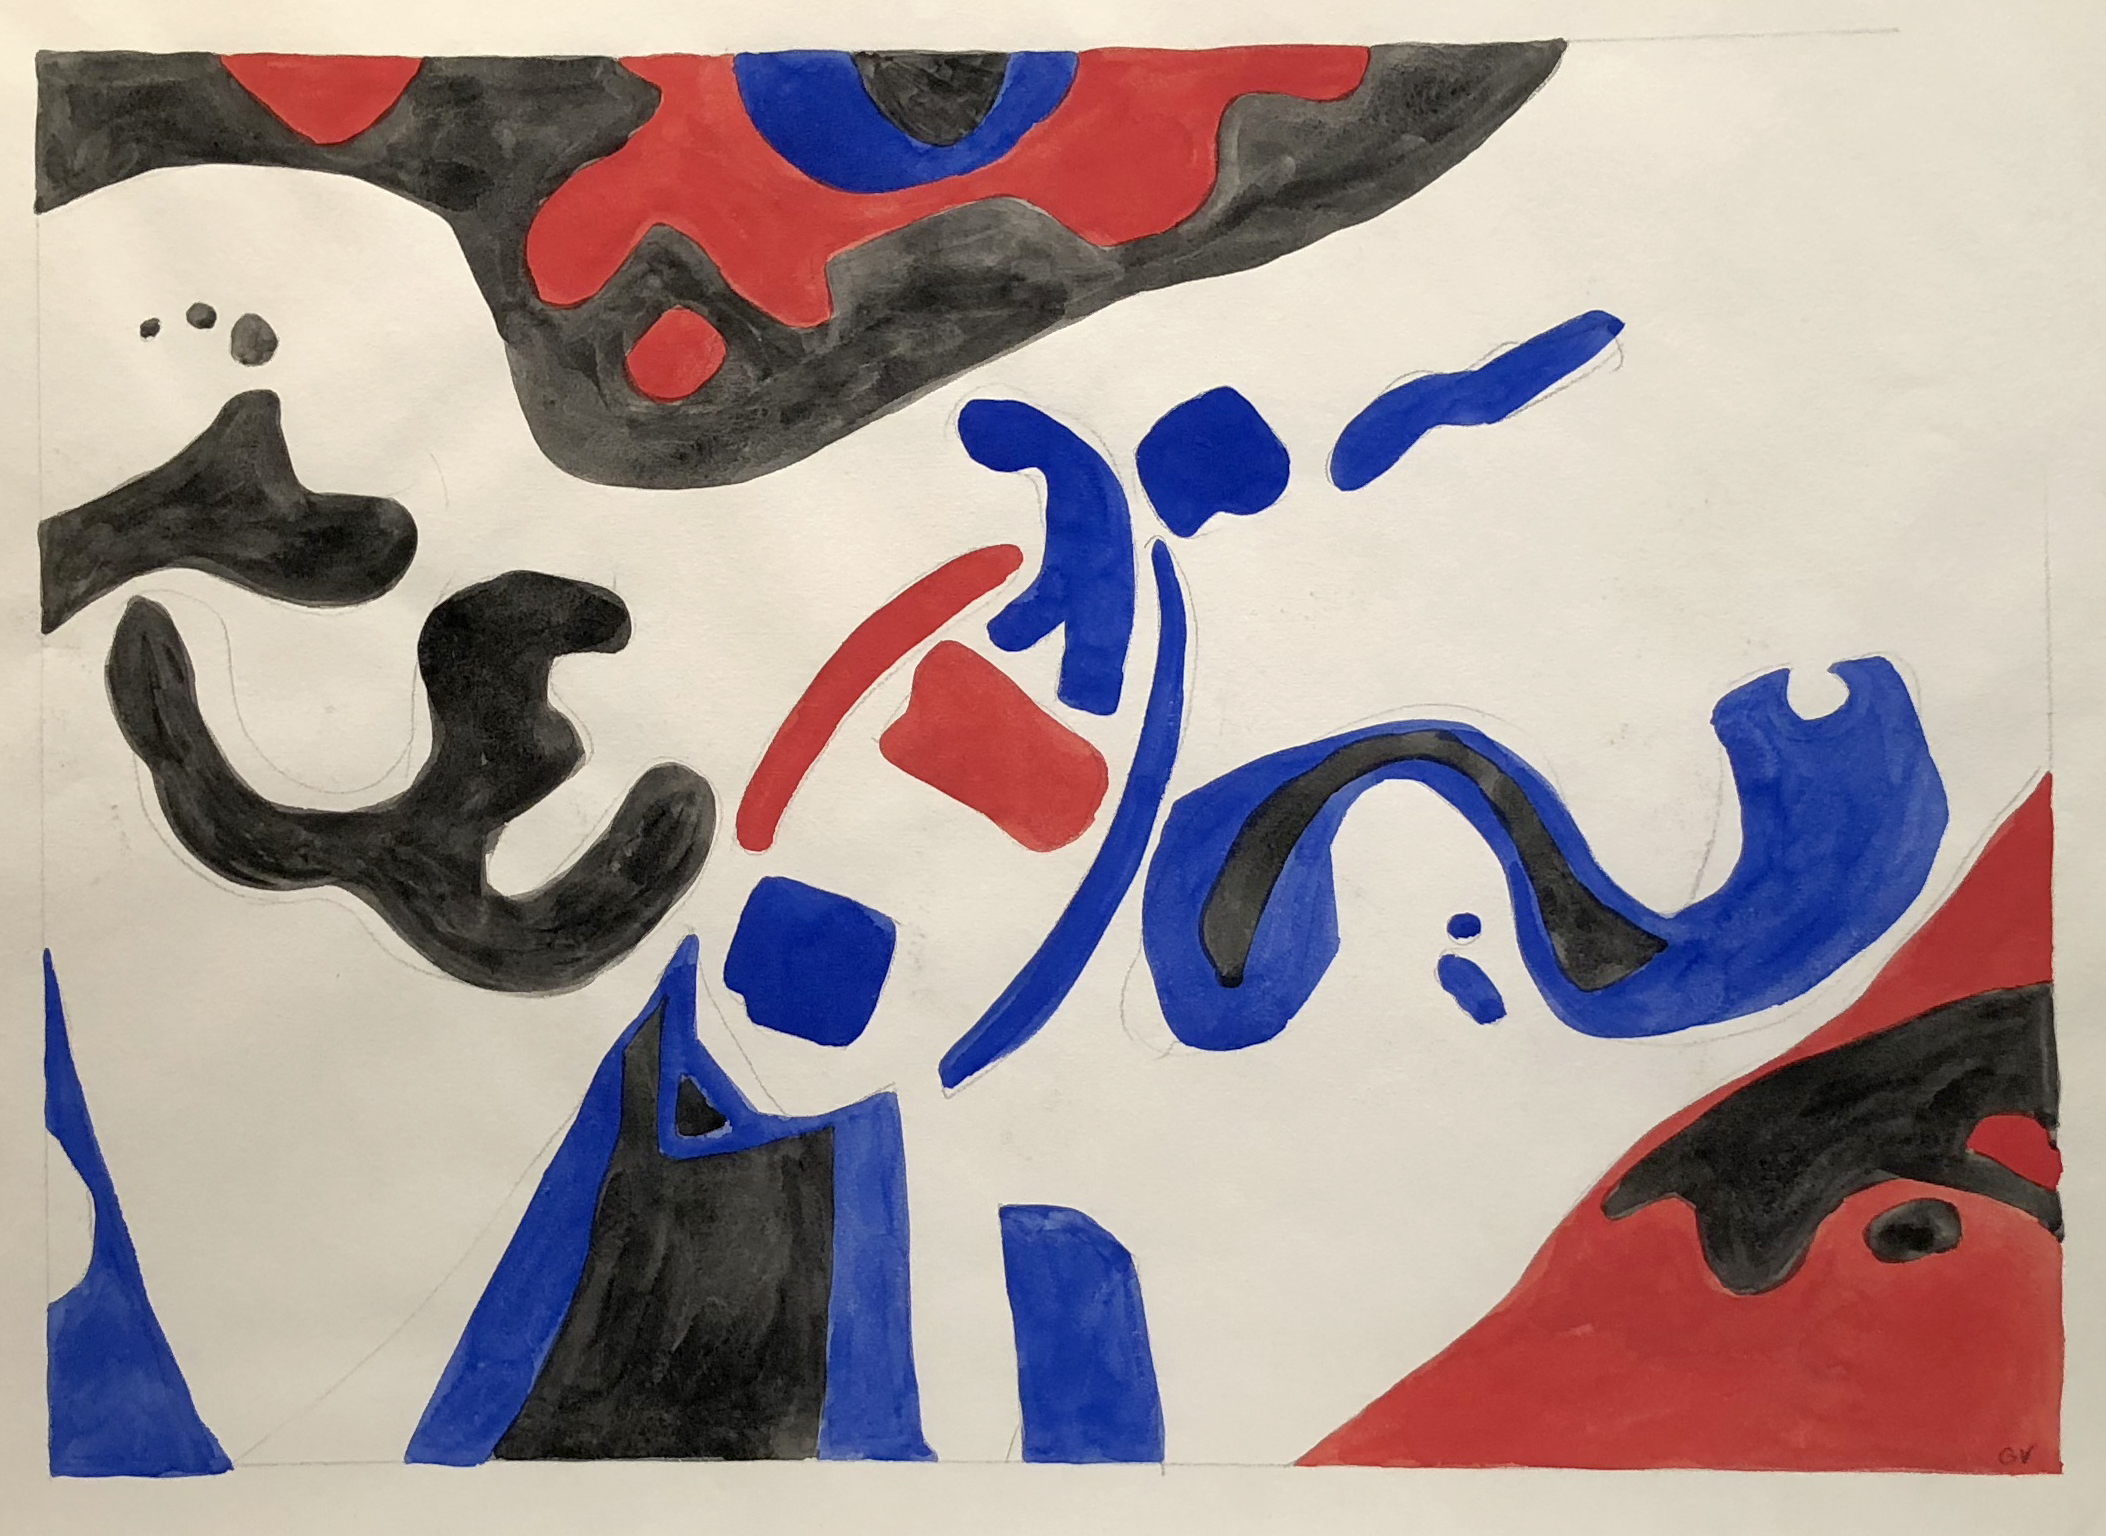 Dory – Red, White, Blue, Watercolor on Paper, 19 x 24 inches, 1964